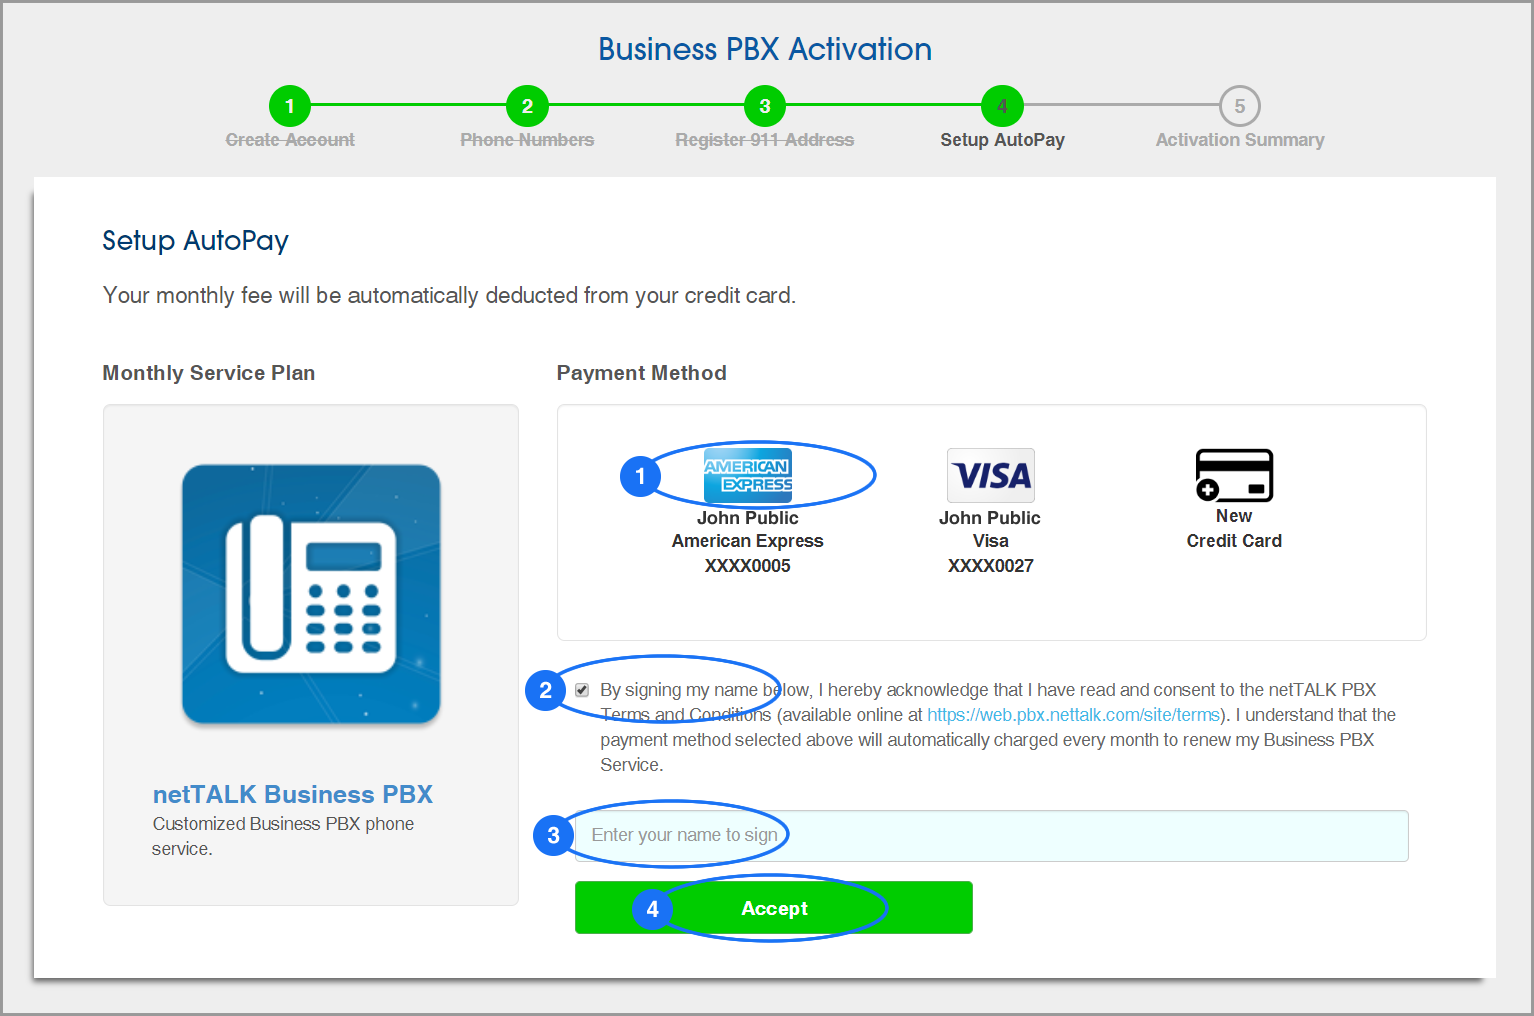 (screenshot of PBX Activation: Step 4: Setup AutoPay - Select a Payment Method)